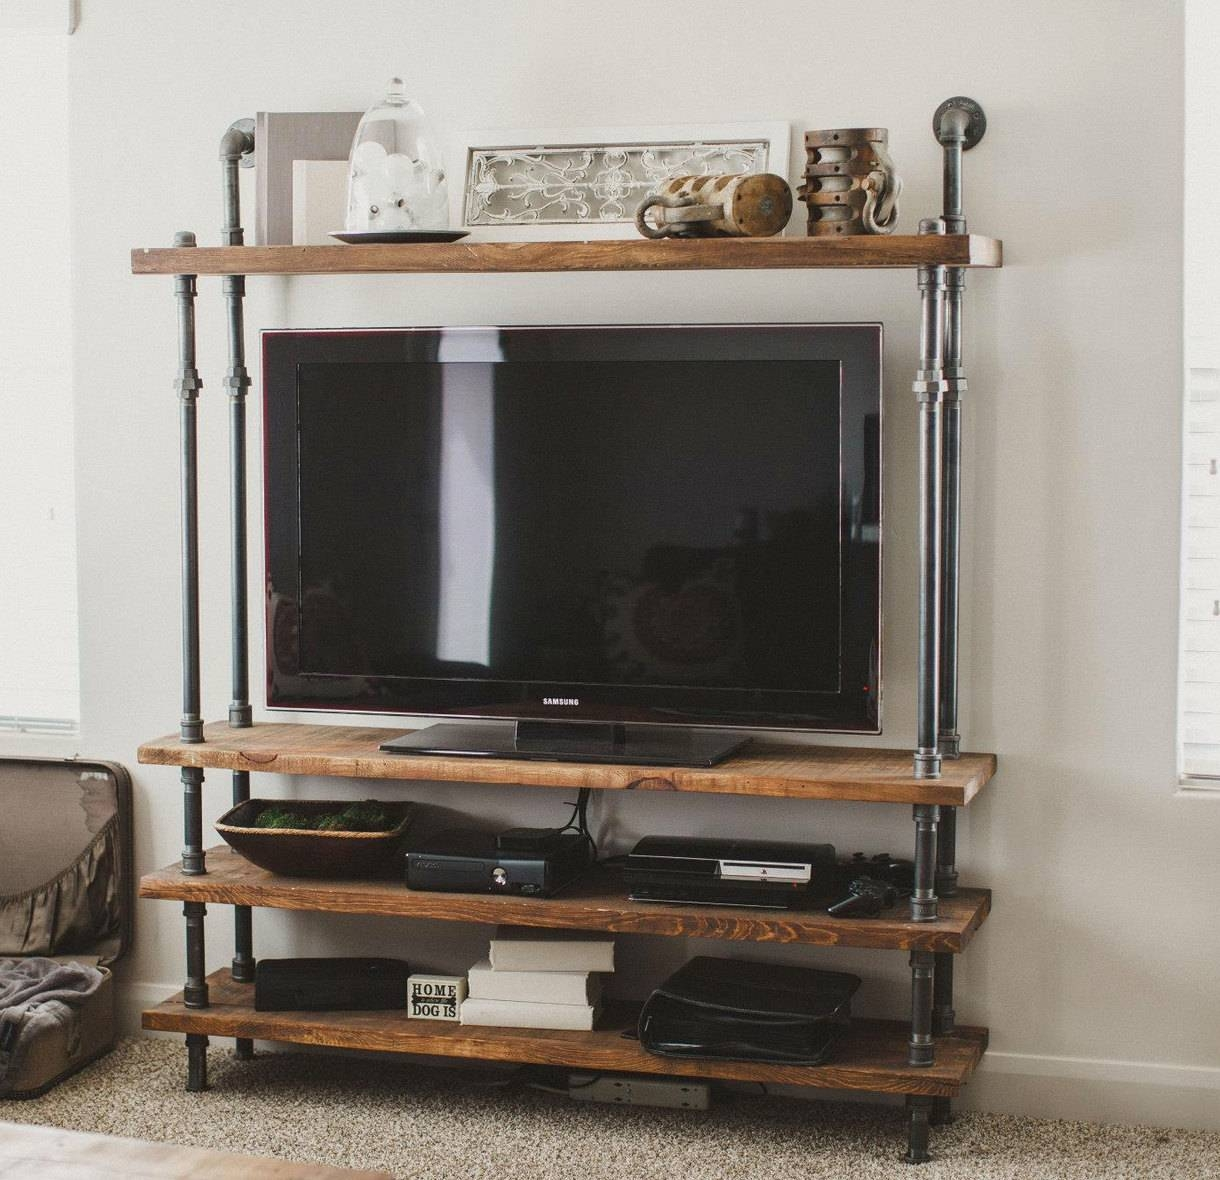 Cool Diy Industrial Pipe And Wood Combo Tv Stand With Shelves Of intended for Tv Stands Bookshelf Combo (Image 3 of 15)